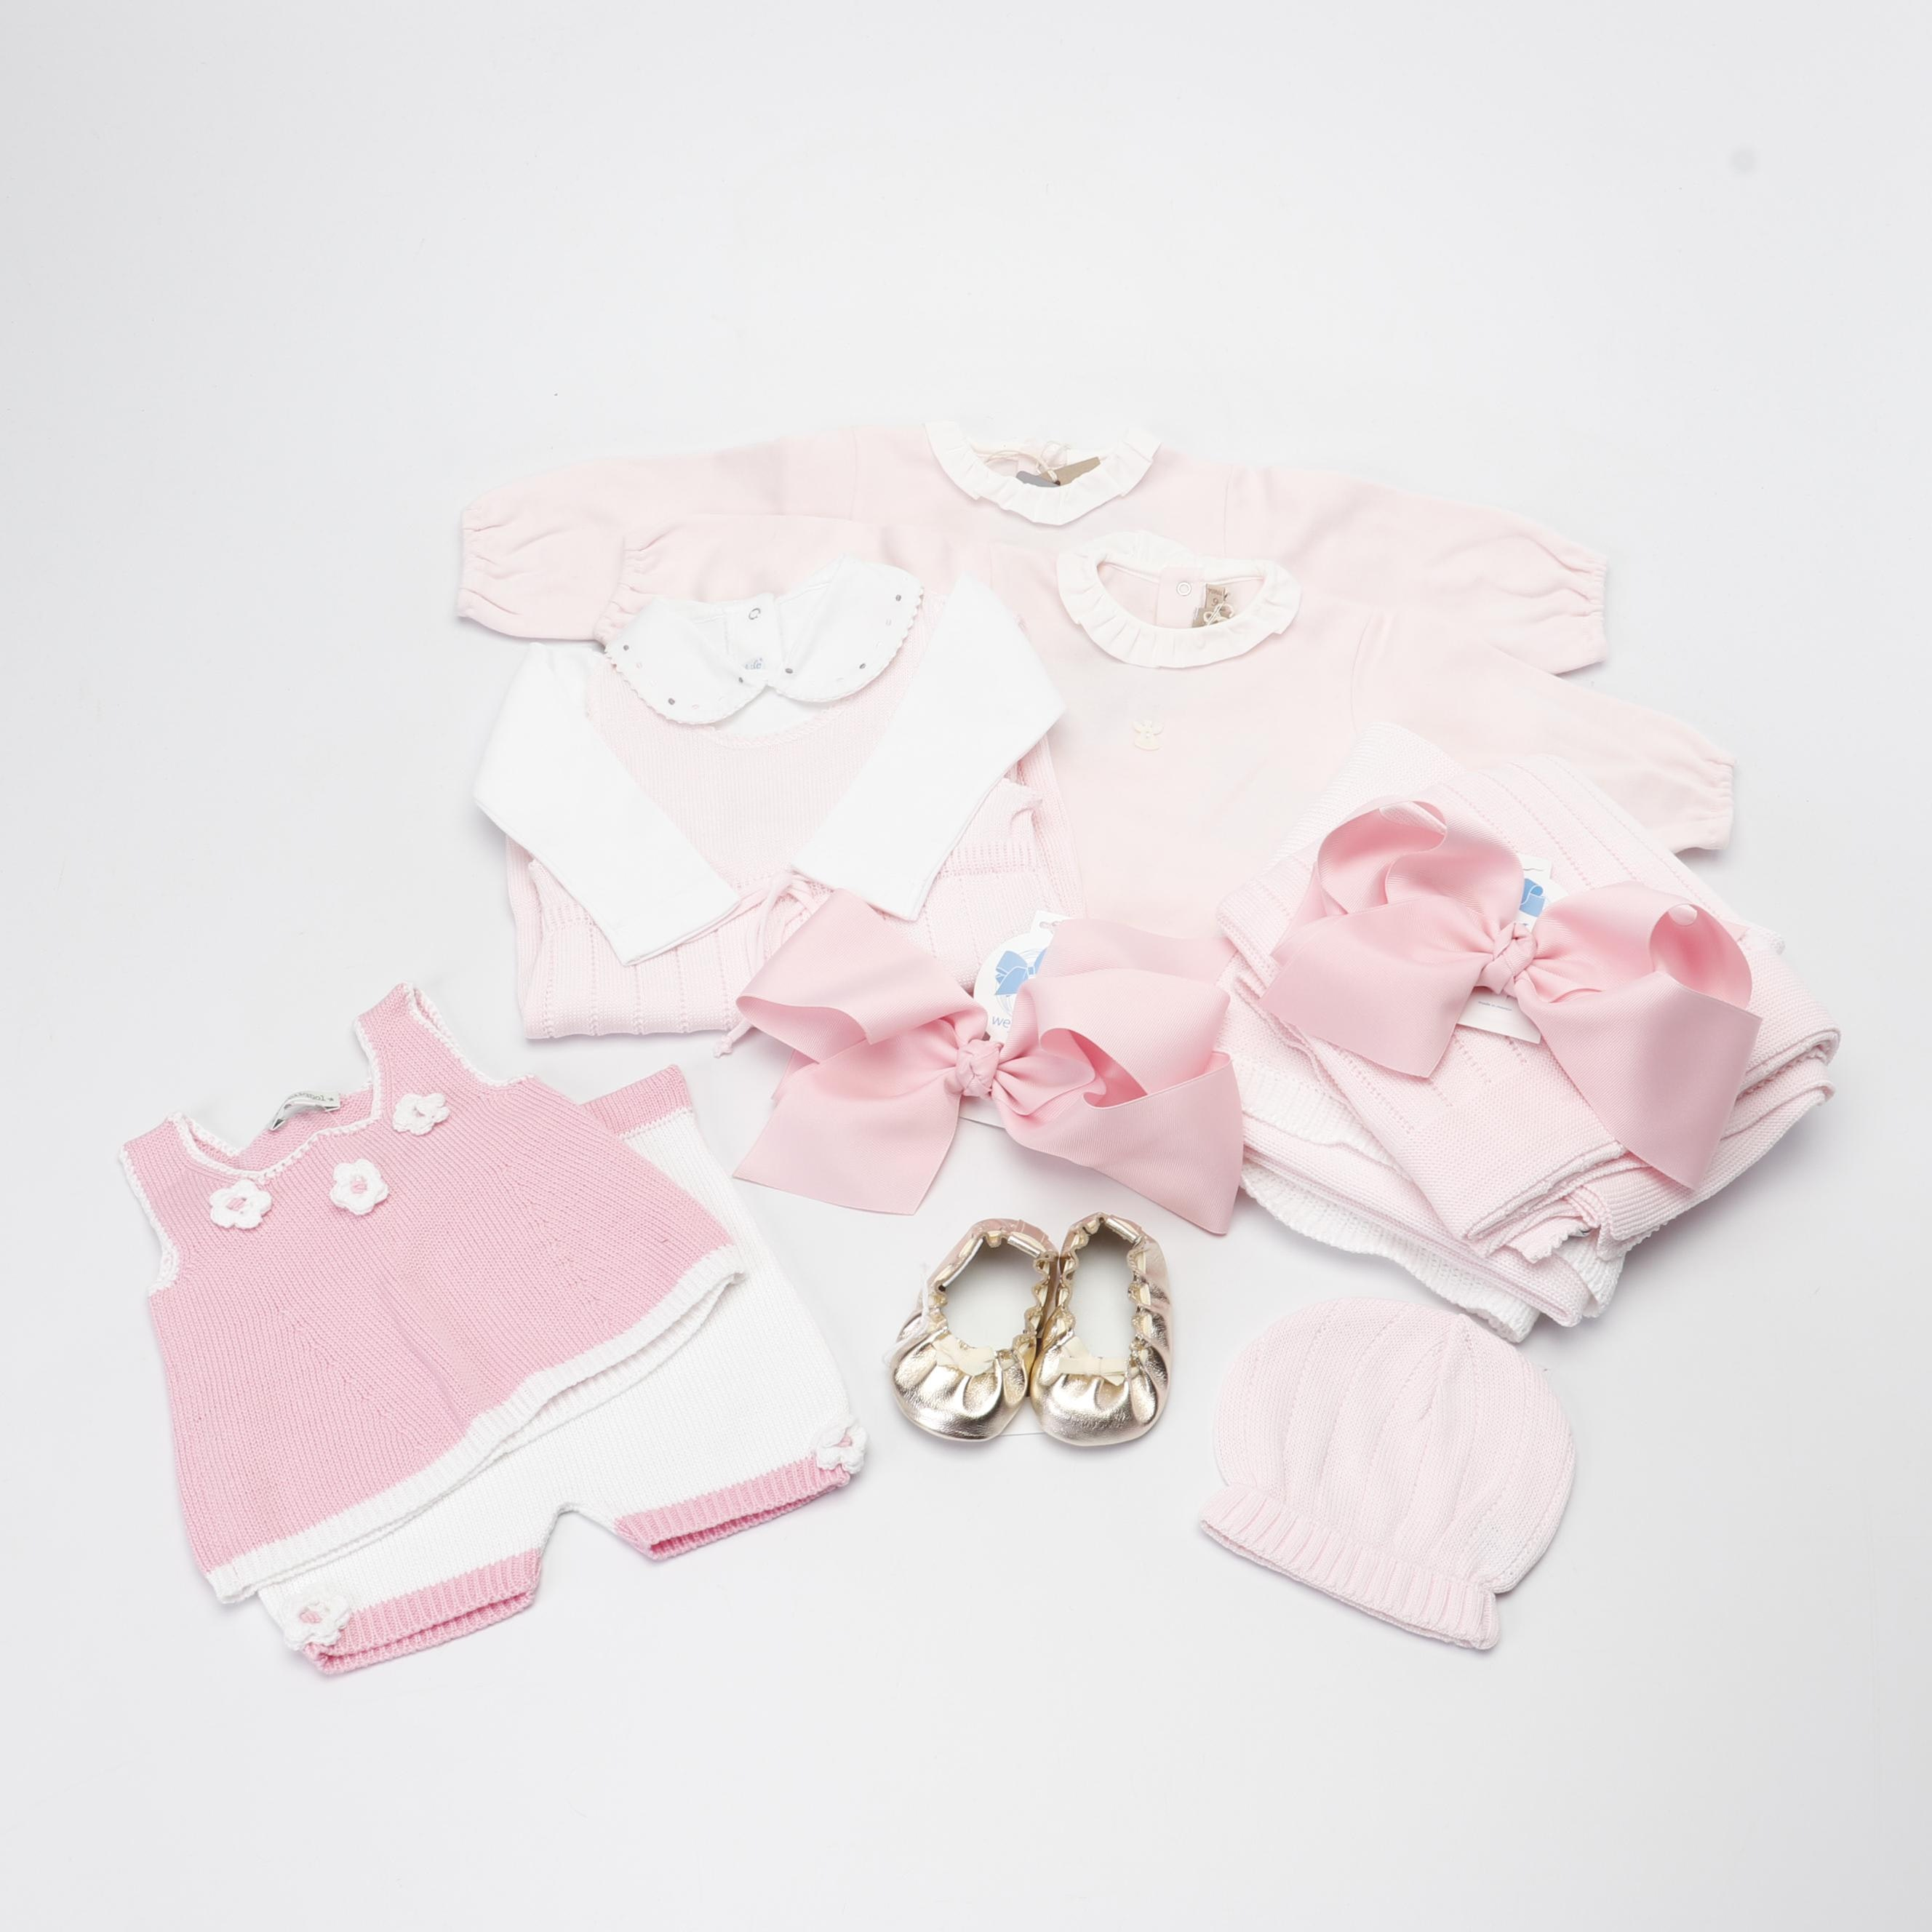 Baby Girls' Clothing, Blankets and Accessories